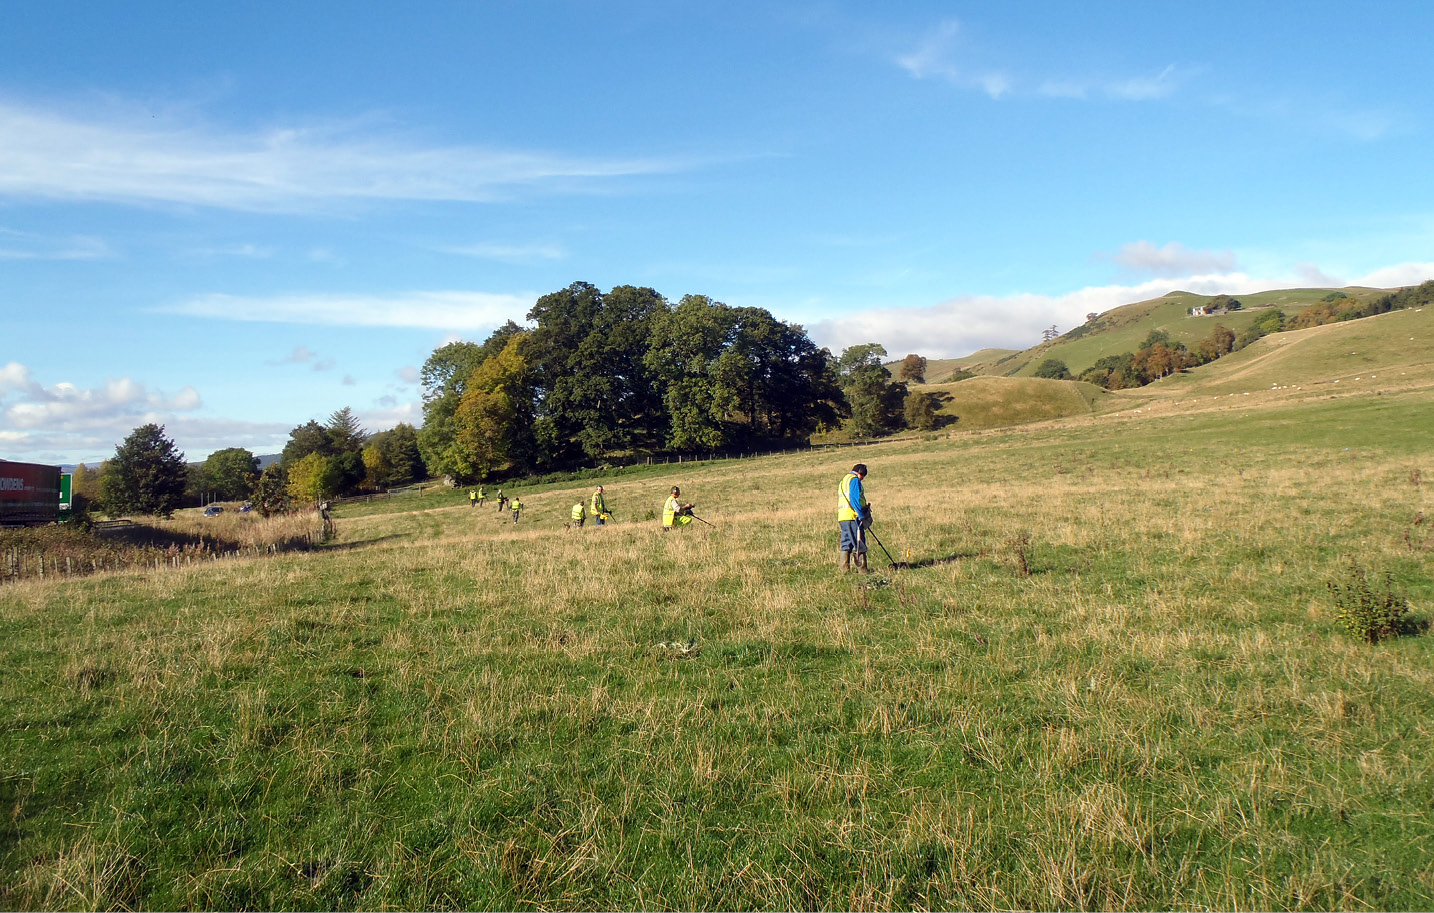 right Metal-detecting survey under way on the north-west side of the battlefield. The steep, naturally terraced ground would have provided the Jacobites with cover as they charged downhill. The density of finds suggests significant fighting in this area.